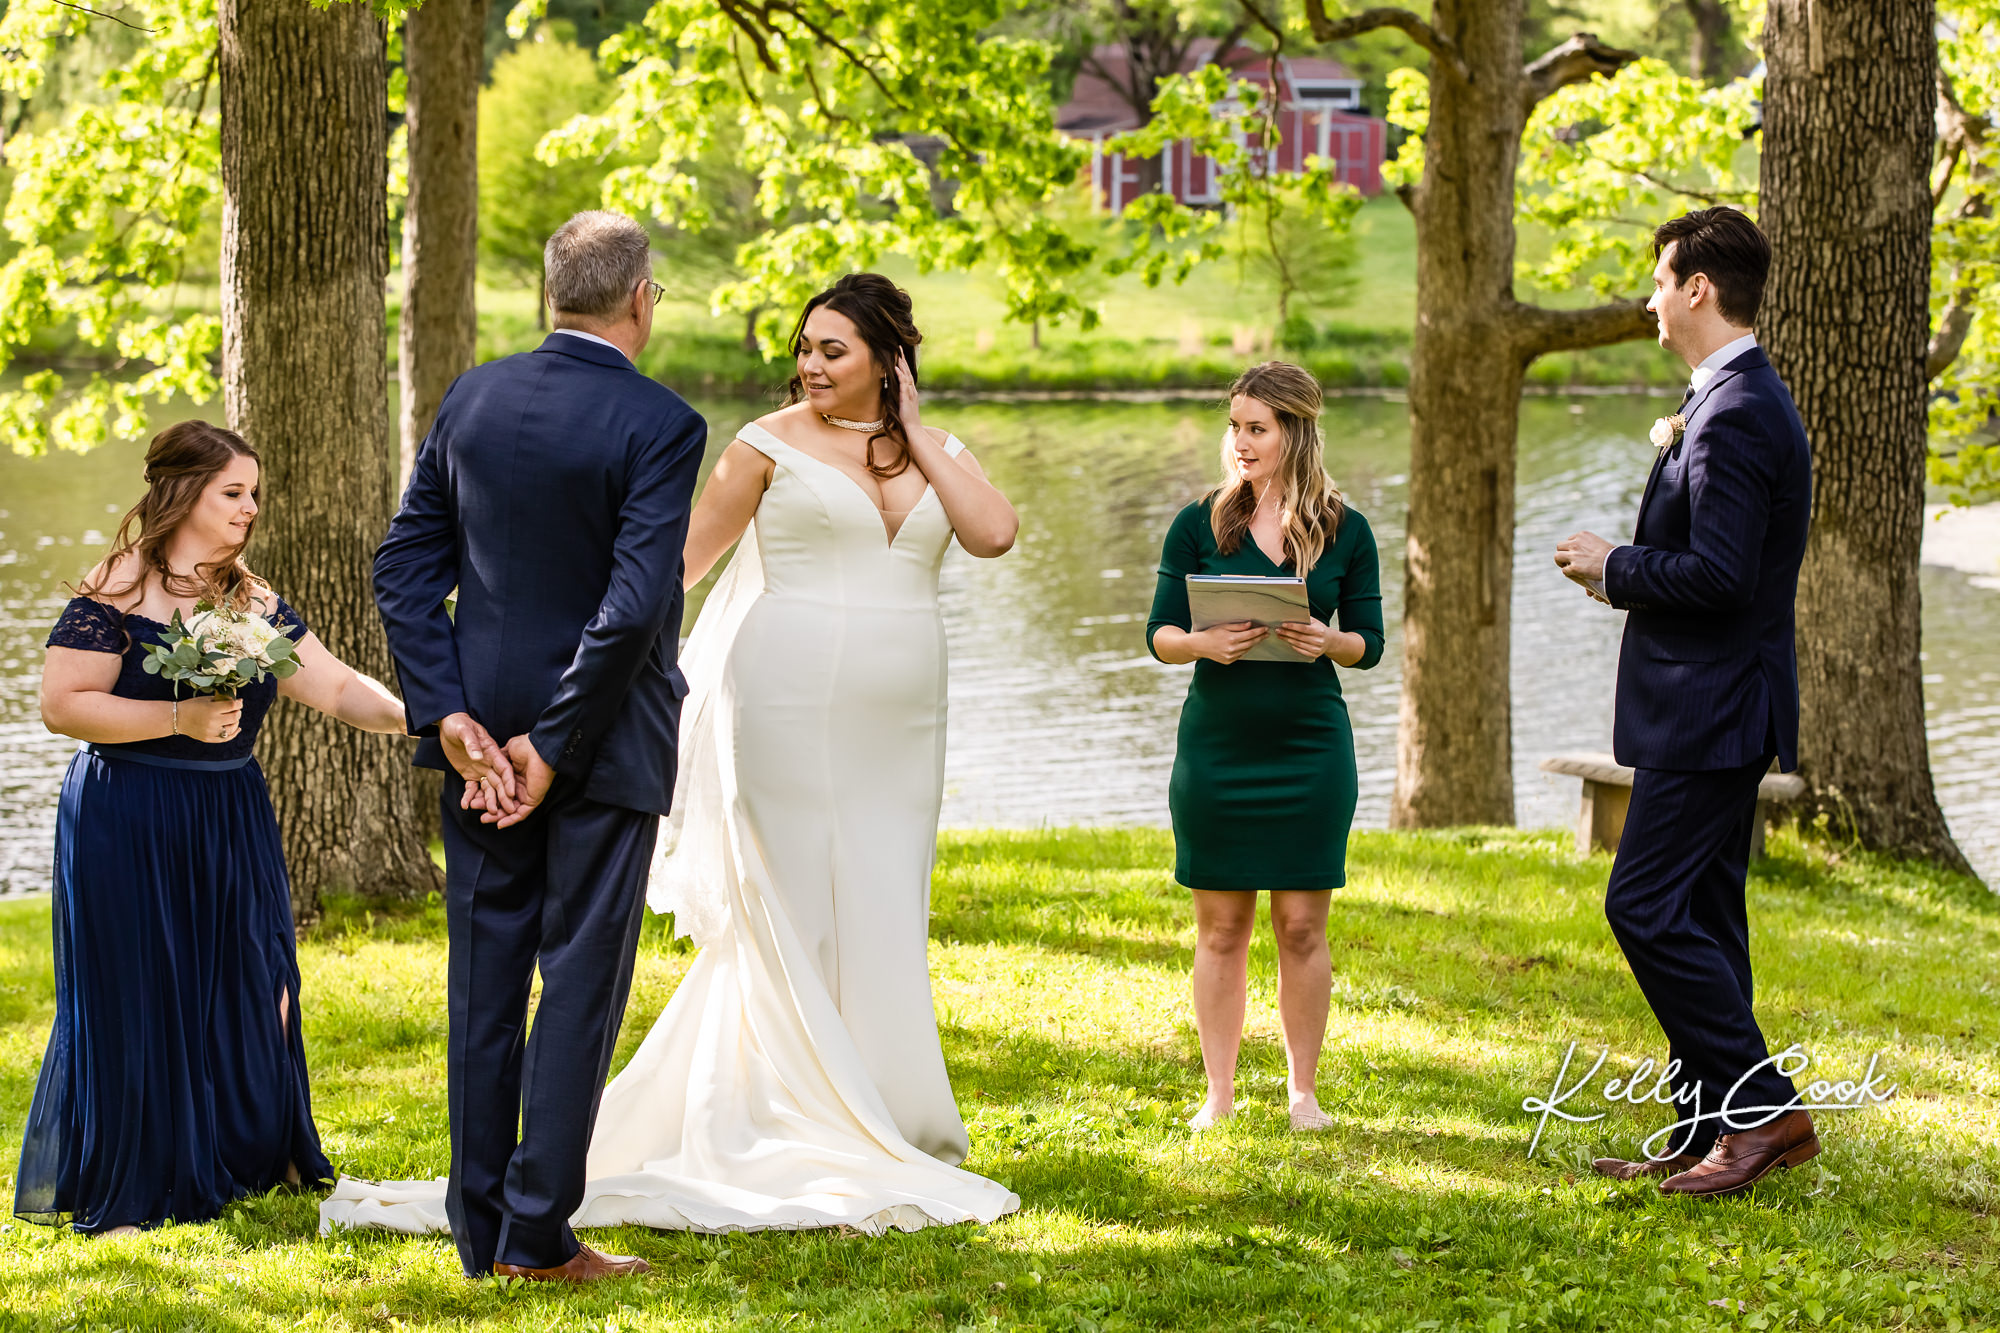 A bride and her father walking down the aisle for a backyard mini wedding